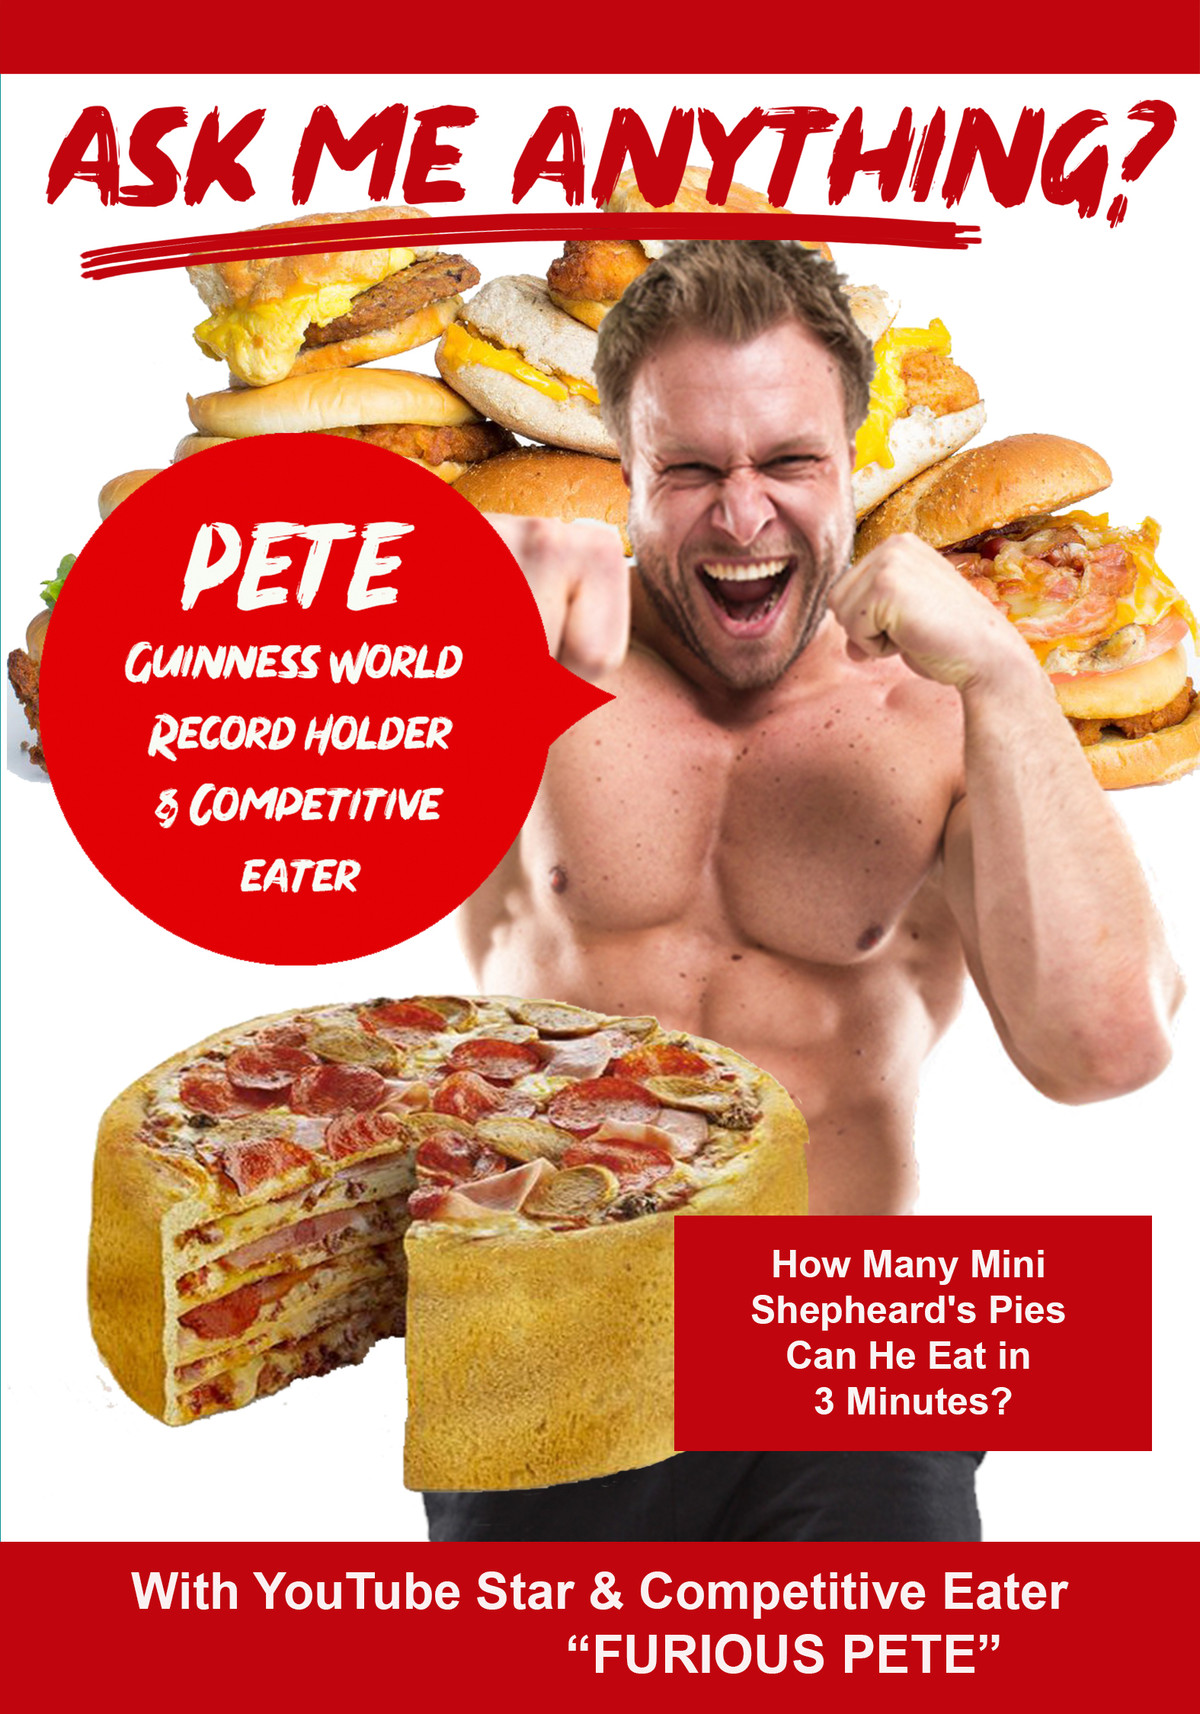 K4834 - Ask Me Anything about being a YouTube Star & Competitive Eater with Furious Pete